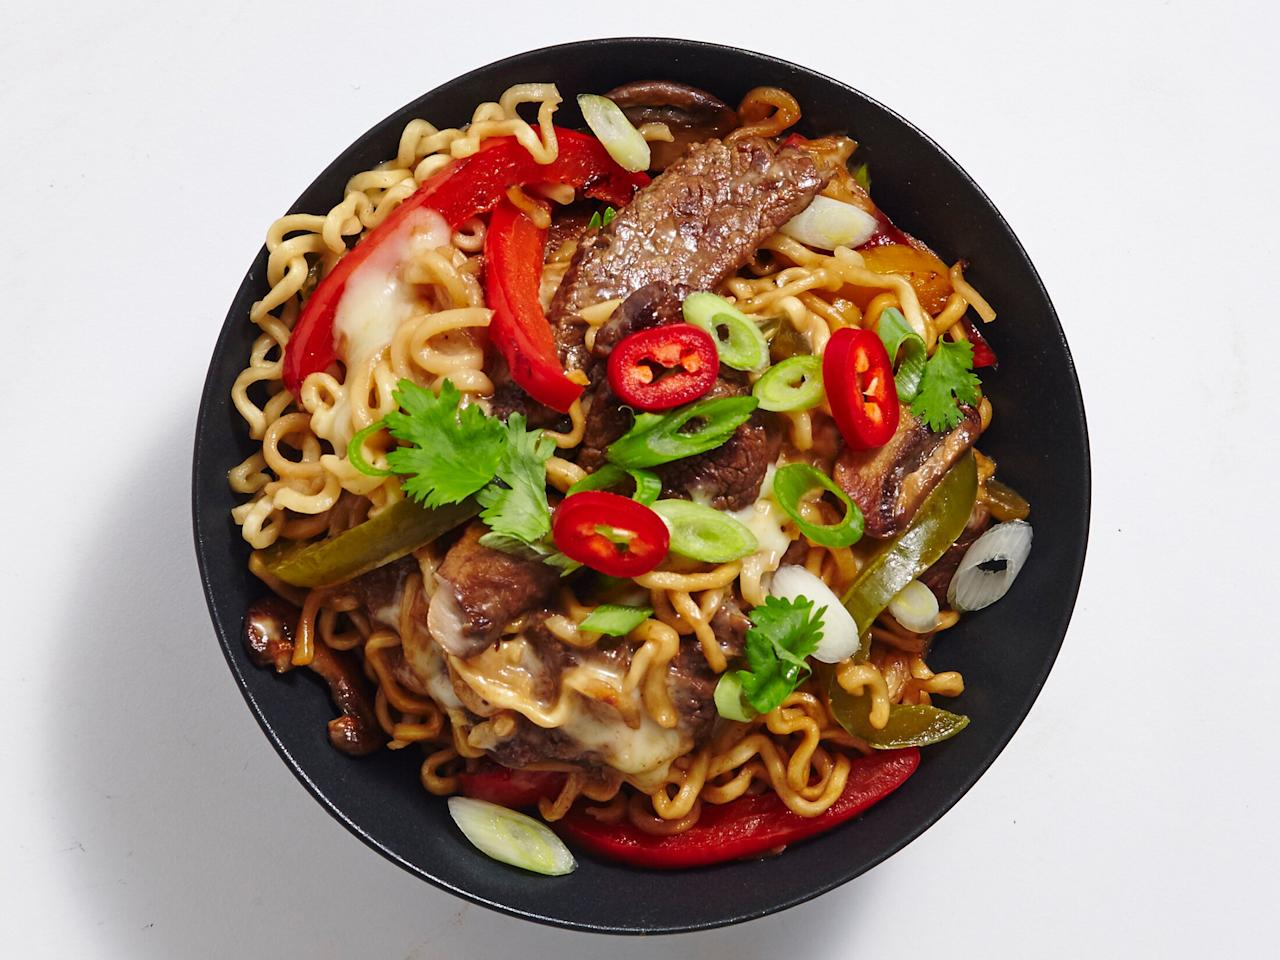 """<p>Though far from traditional, this mighty mashup meal combines two of our favorite comfort foods: <a href=""""https://www.myrecipes.com/recipe/philly-cheesesteak"""">Philly cheesesteaks</a> and ramen. What's not to love? </p> <p><a href=""""https://www.myrecipes.com/recipe/teriyaki-cheesesteak-ramen"""">Teriyaki Cheesesteak Ramen Recipe</a></p>"""